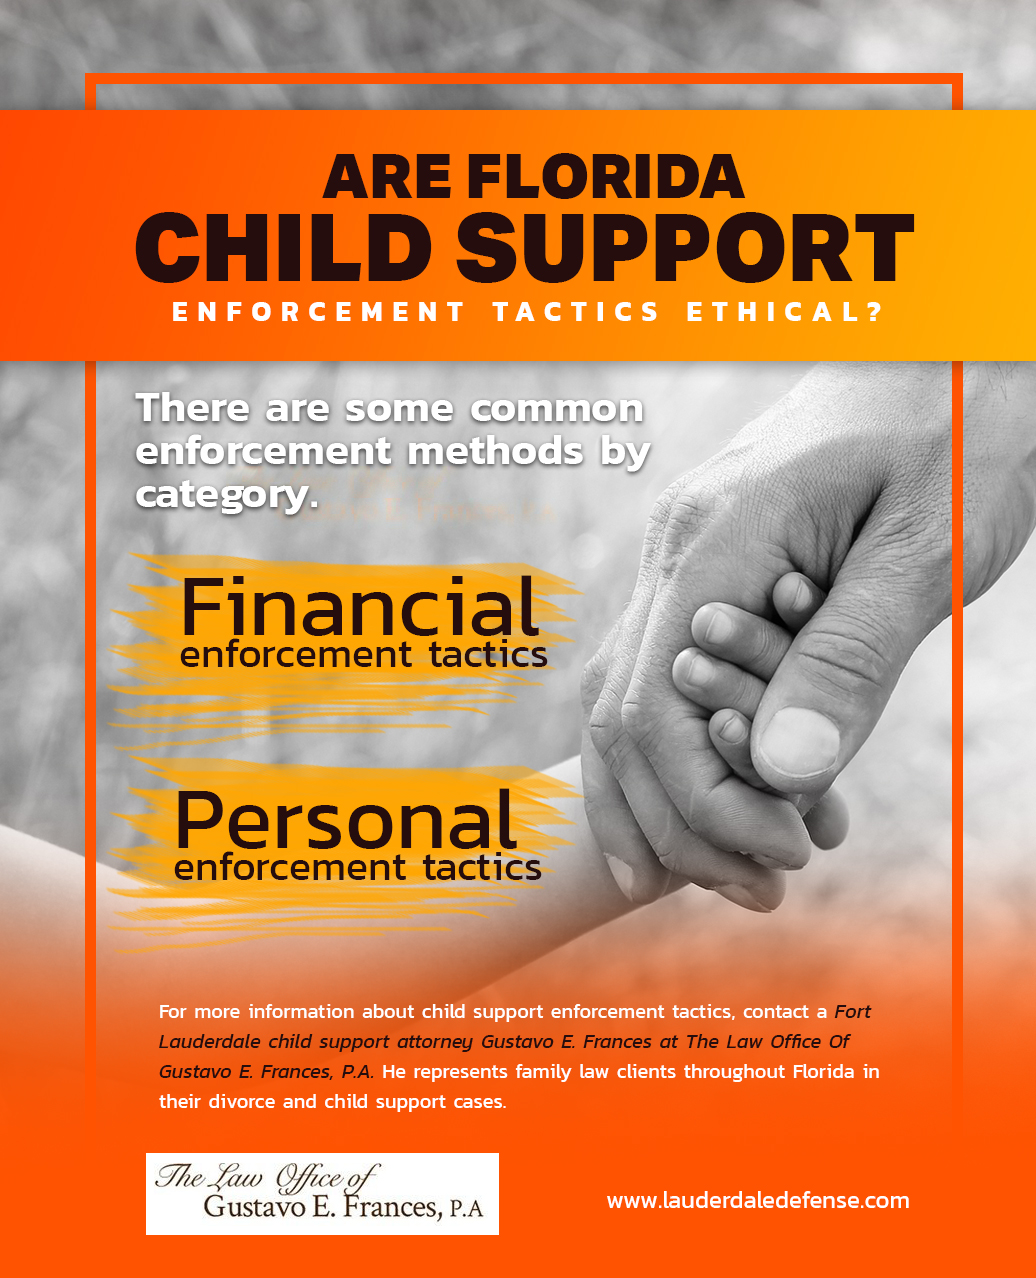 Are Florida Child Support Enforcement Tactics Ethical